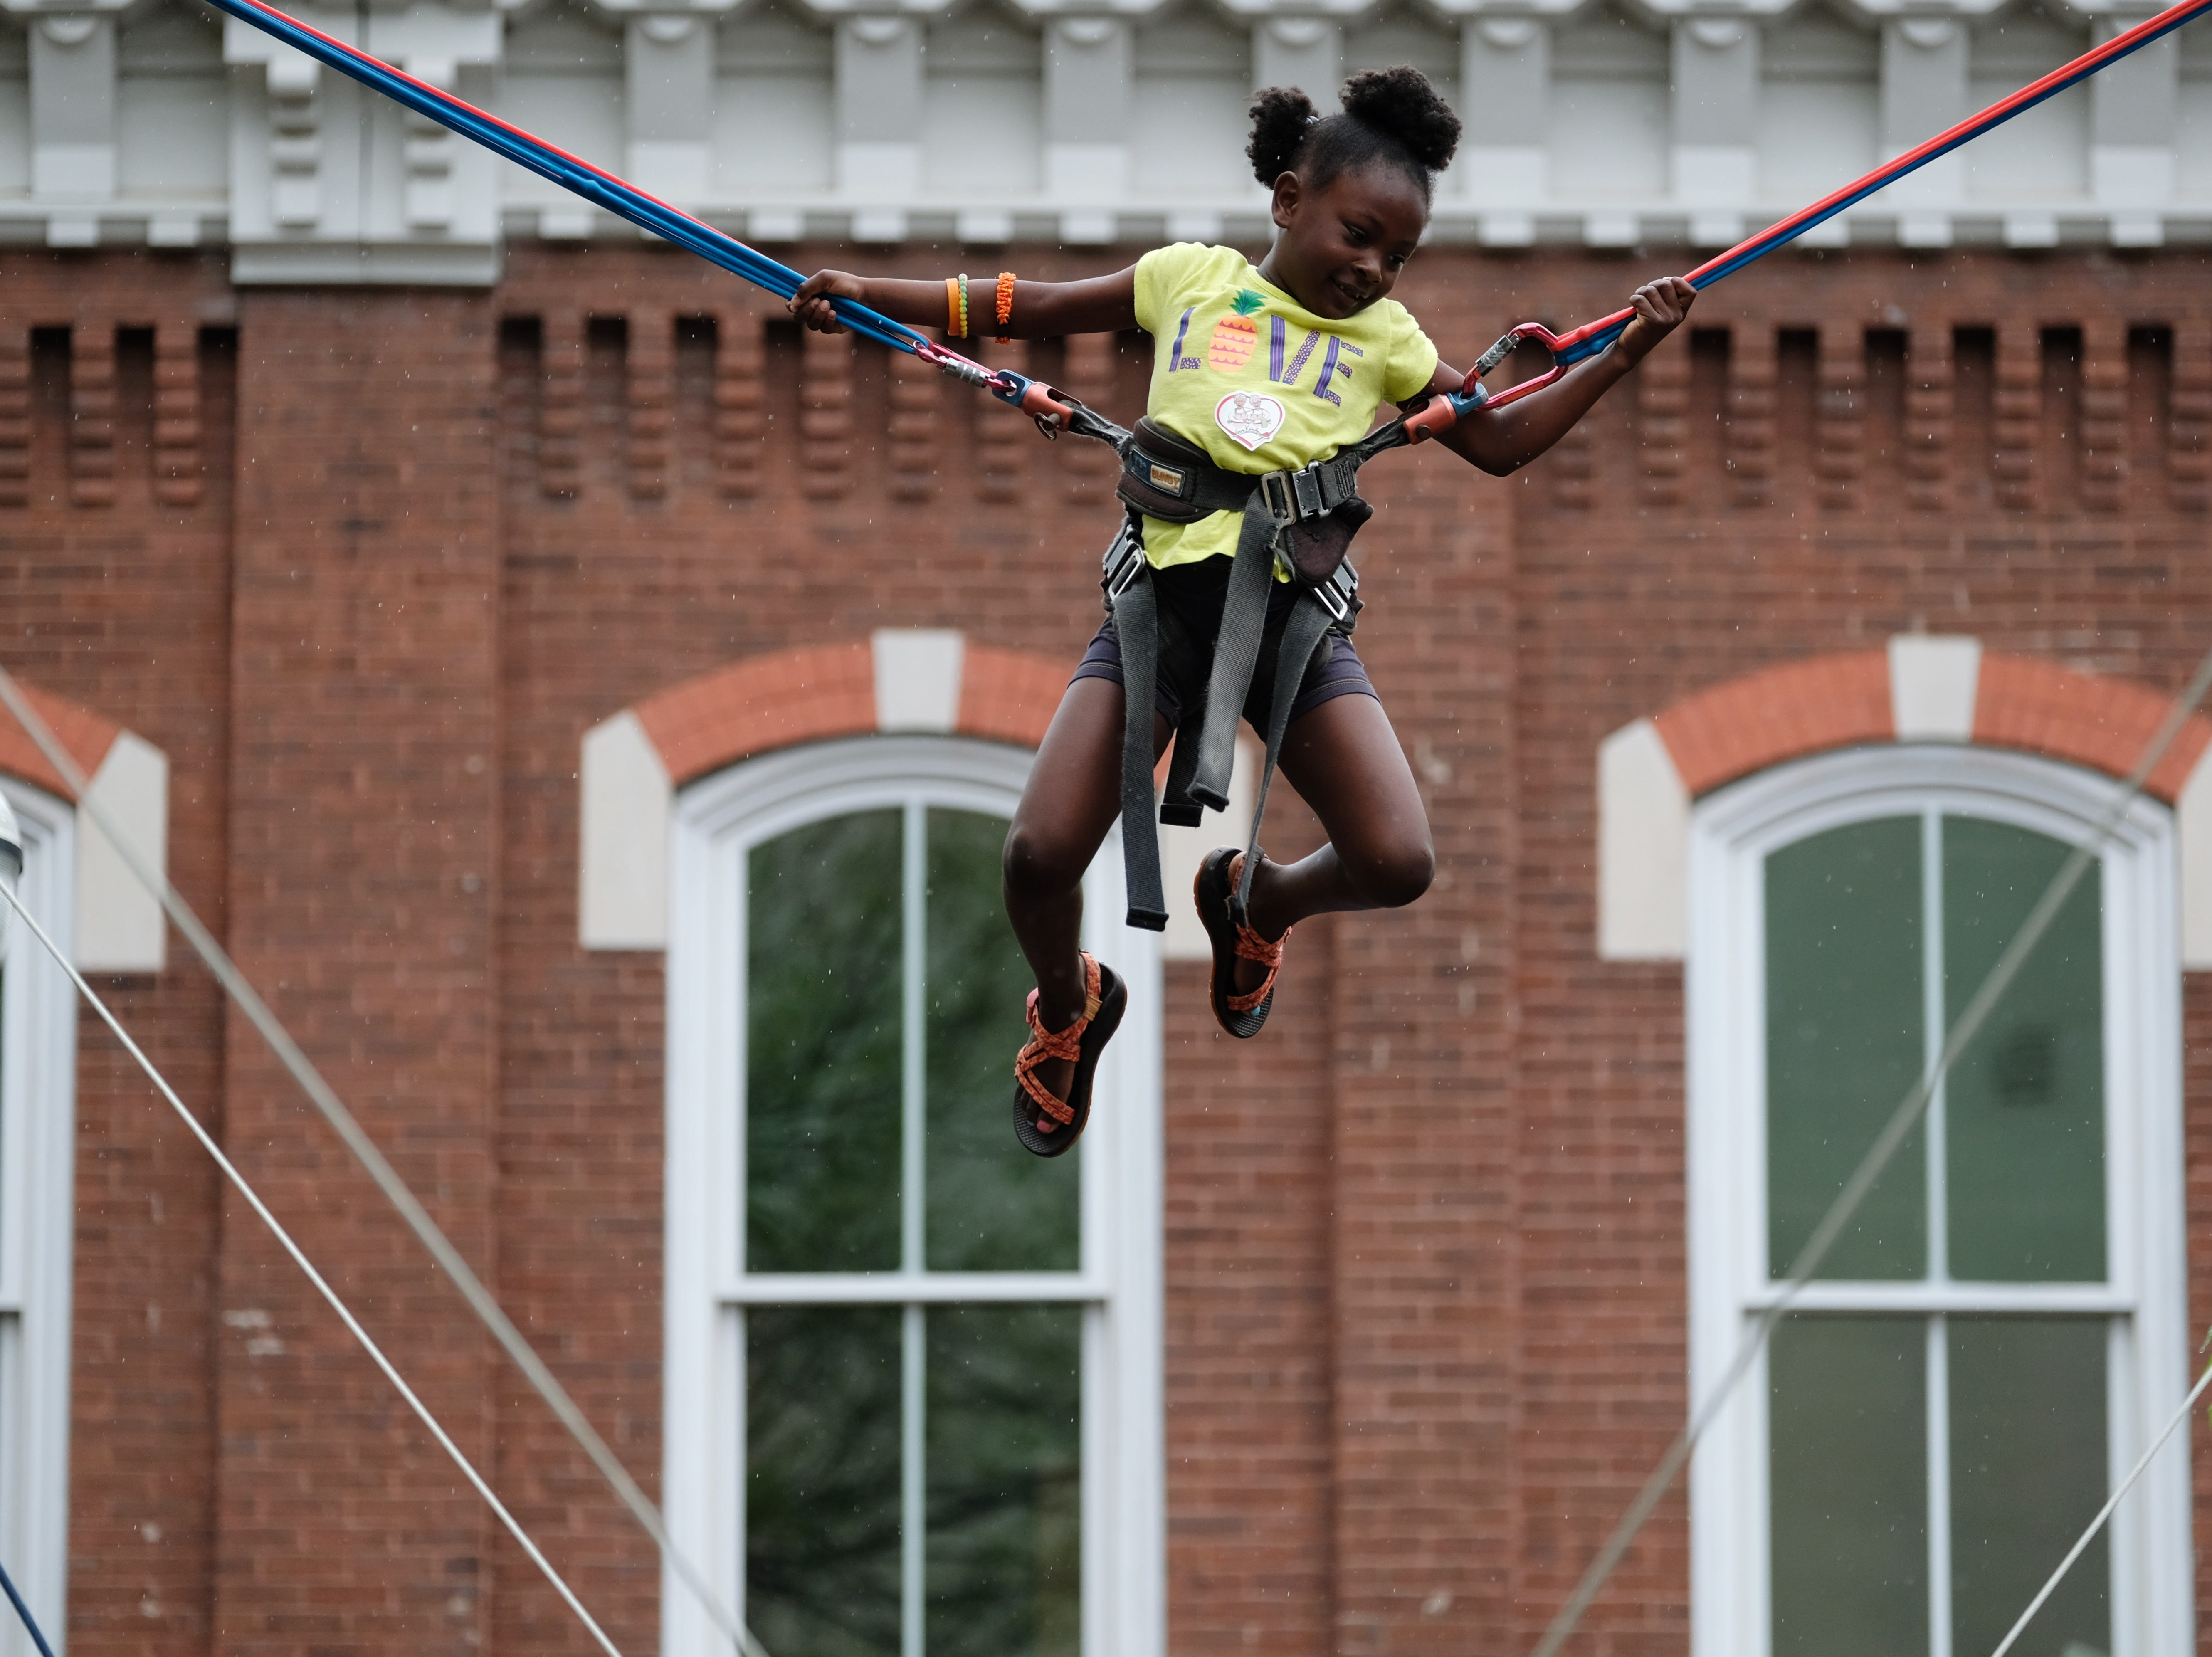 Ra'Ziya Grate, 6, jumps on a trampoline during the Rossini Festival in Knoxville on Saturday, April 13, 2019. 